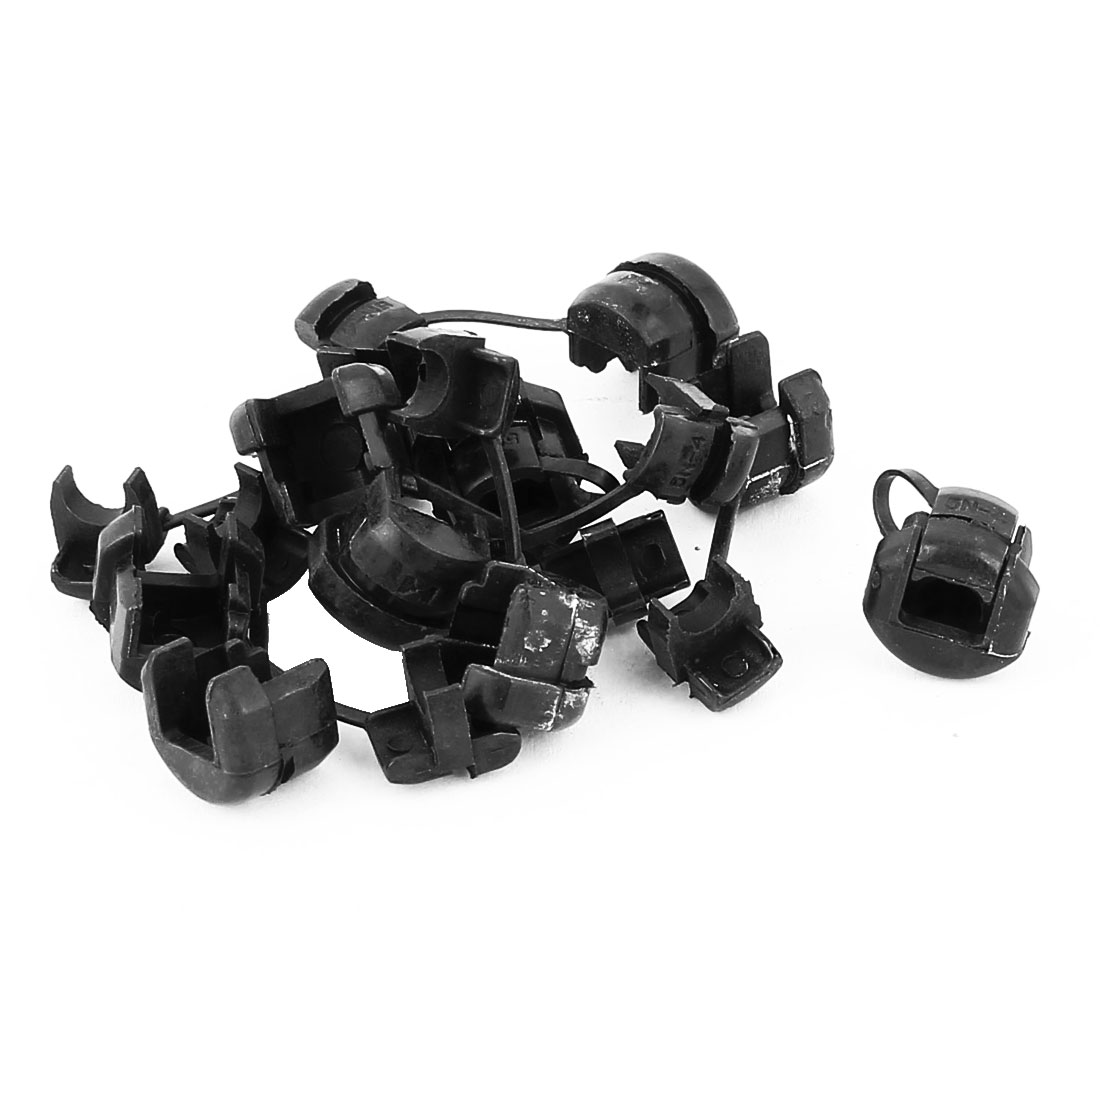 10Pcs 5N-4 Round Cable Wire Strain Relief Bush Grommet 5.3mm Diameter Black